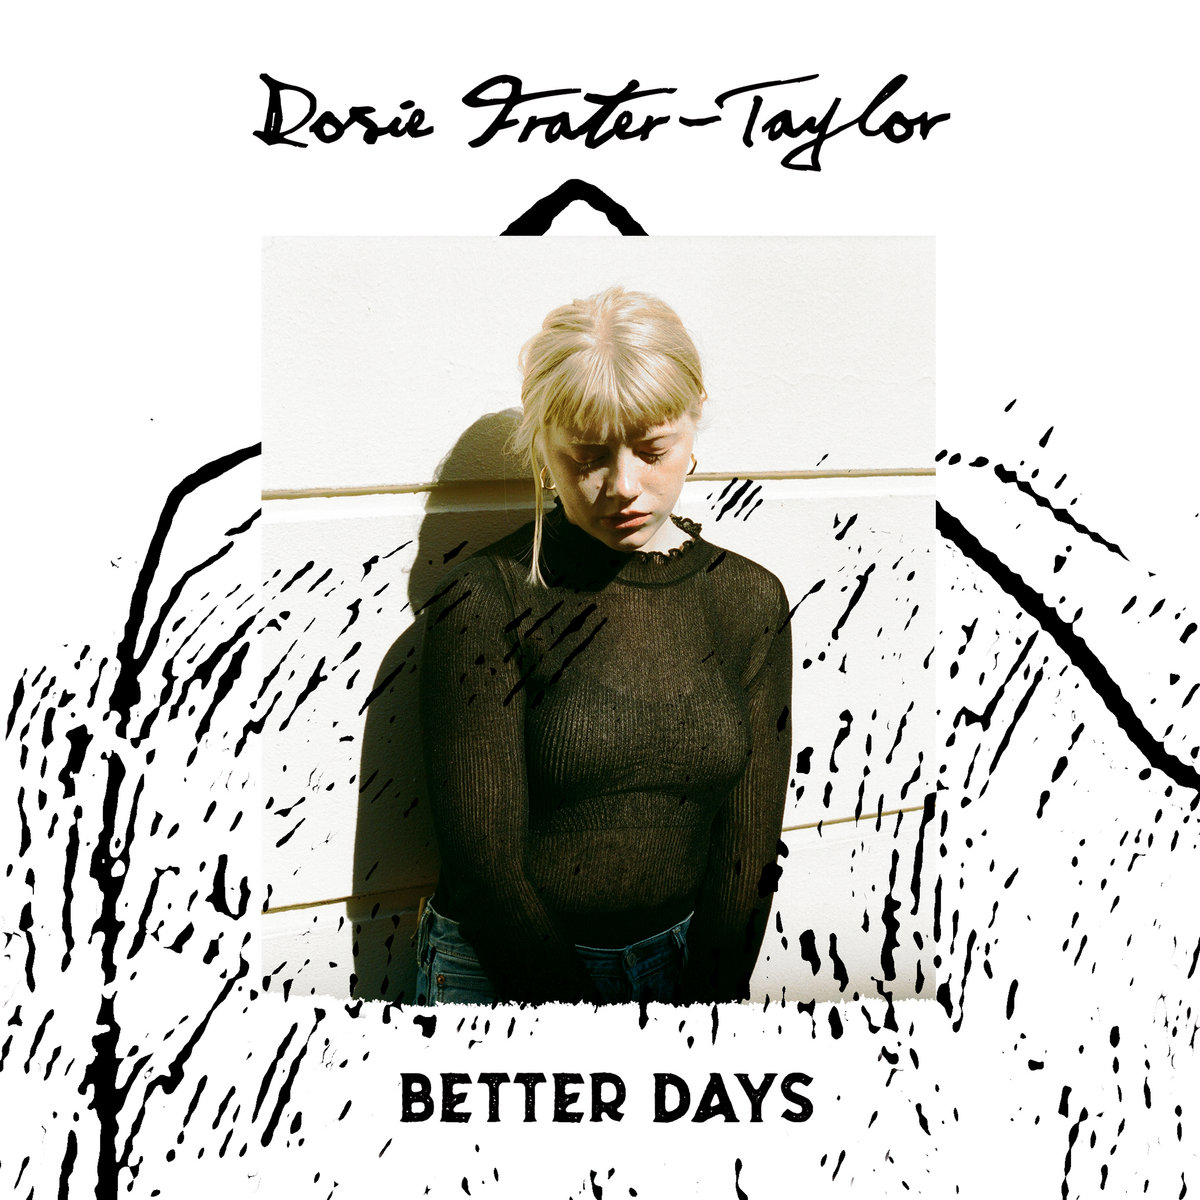 Better Days by Rosie Frater-Taylor